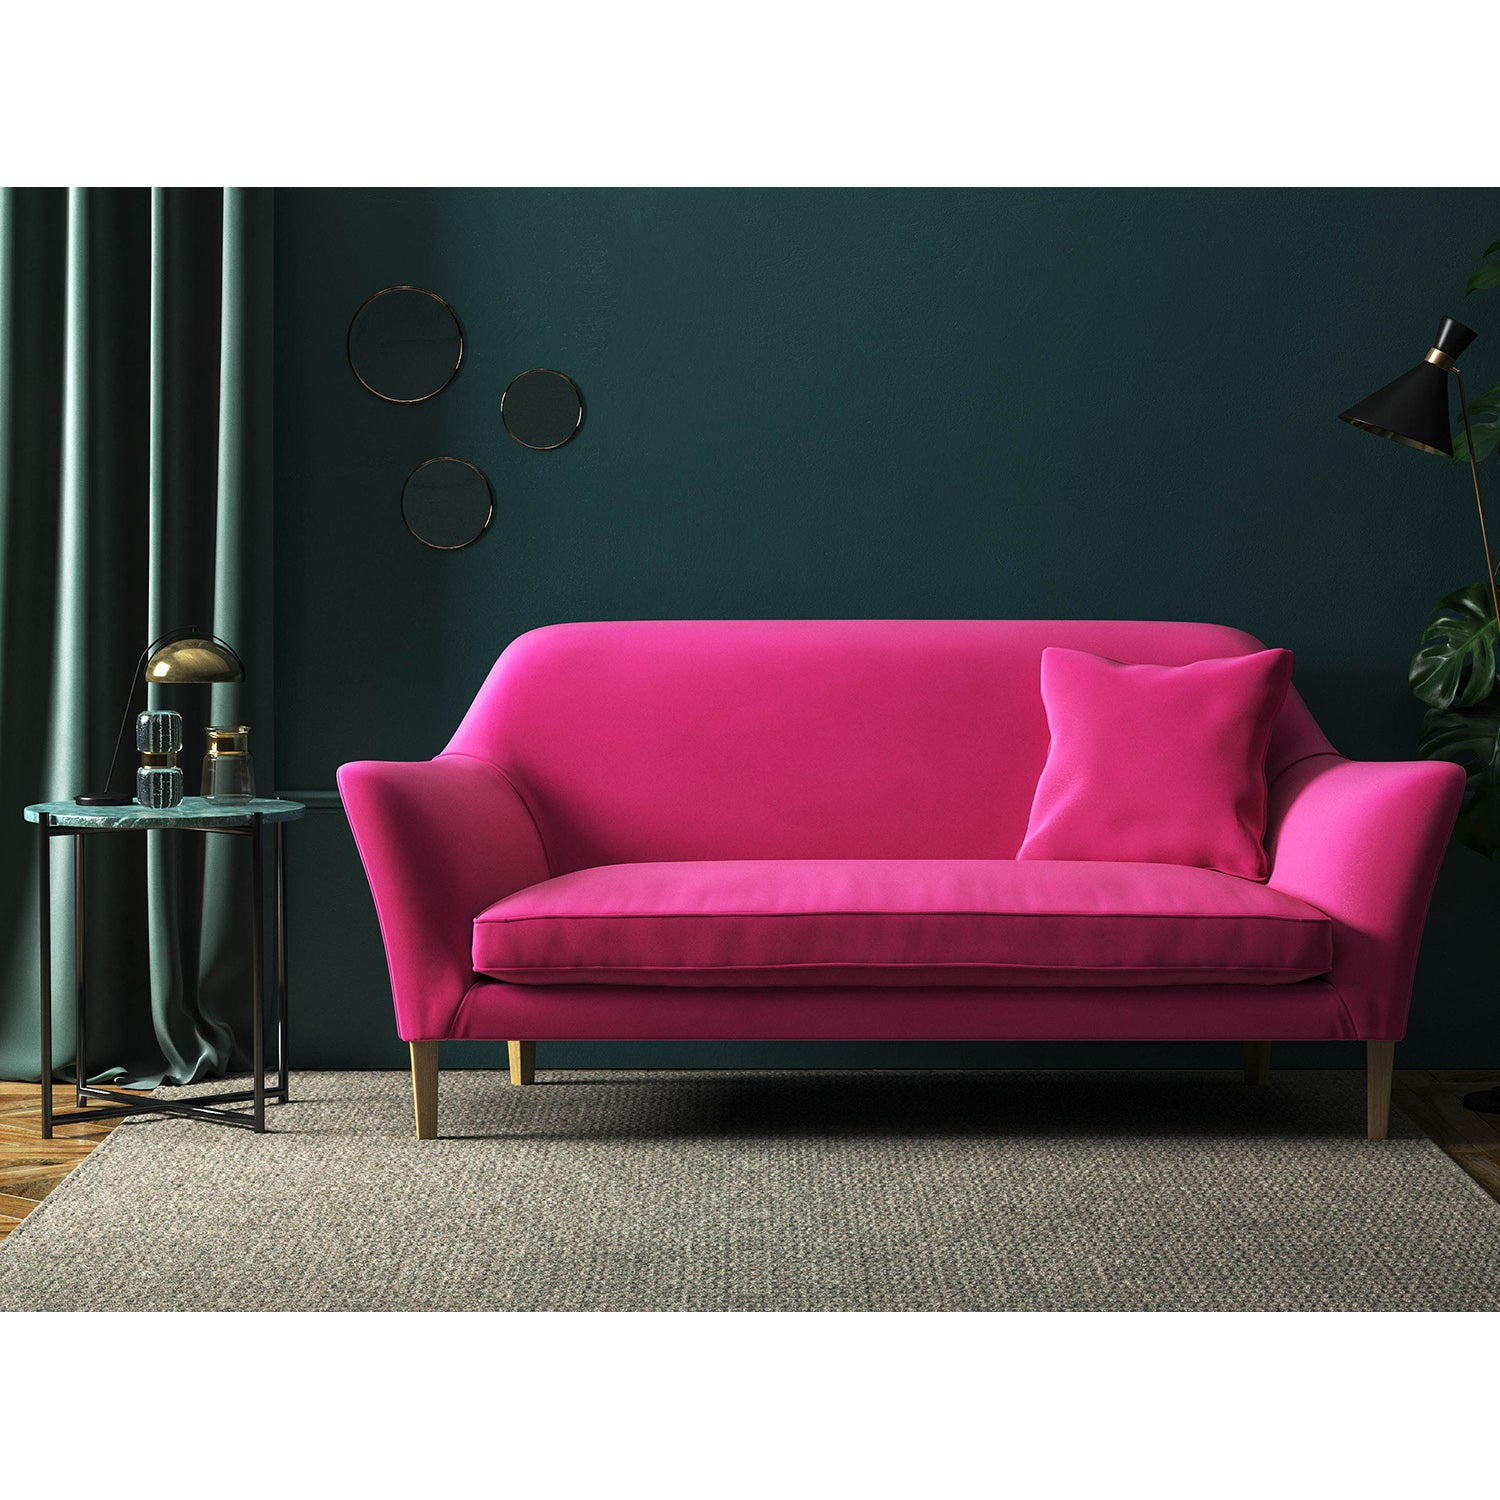 Pink velvet sofa with a stain resistant finish